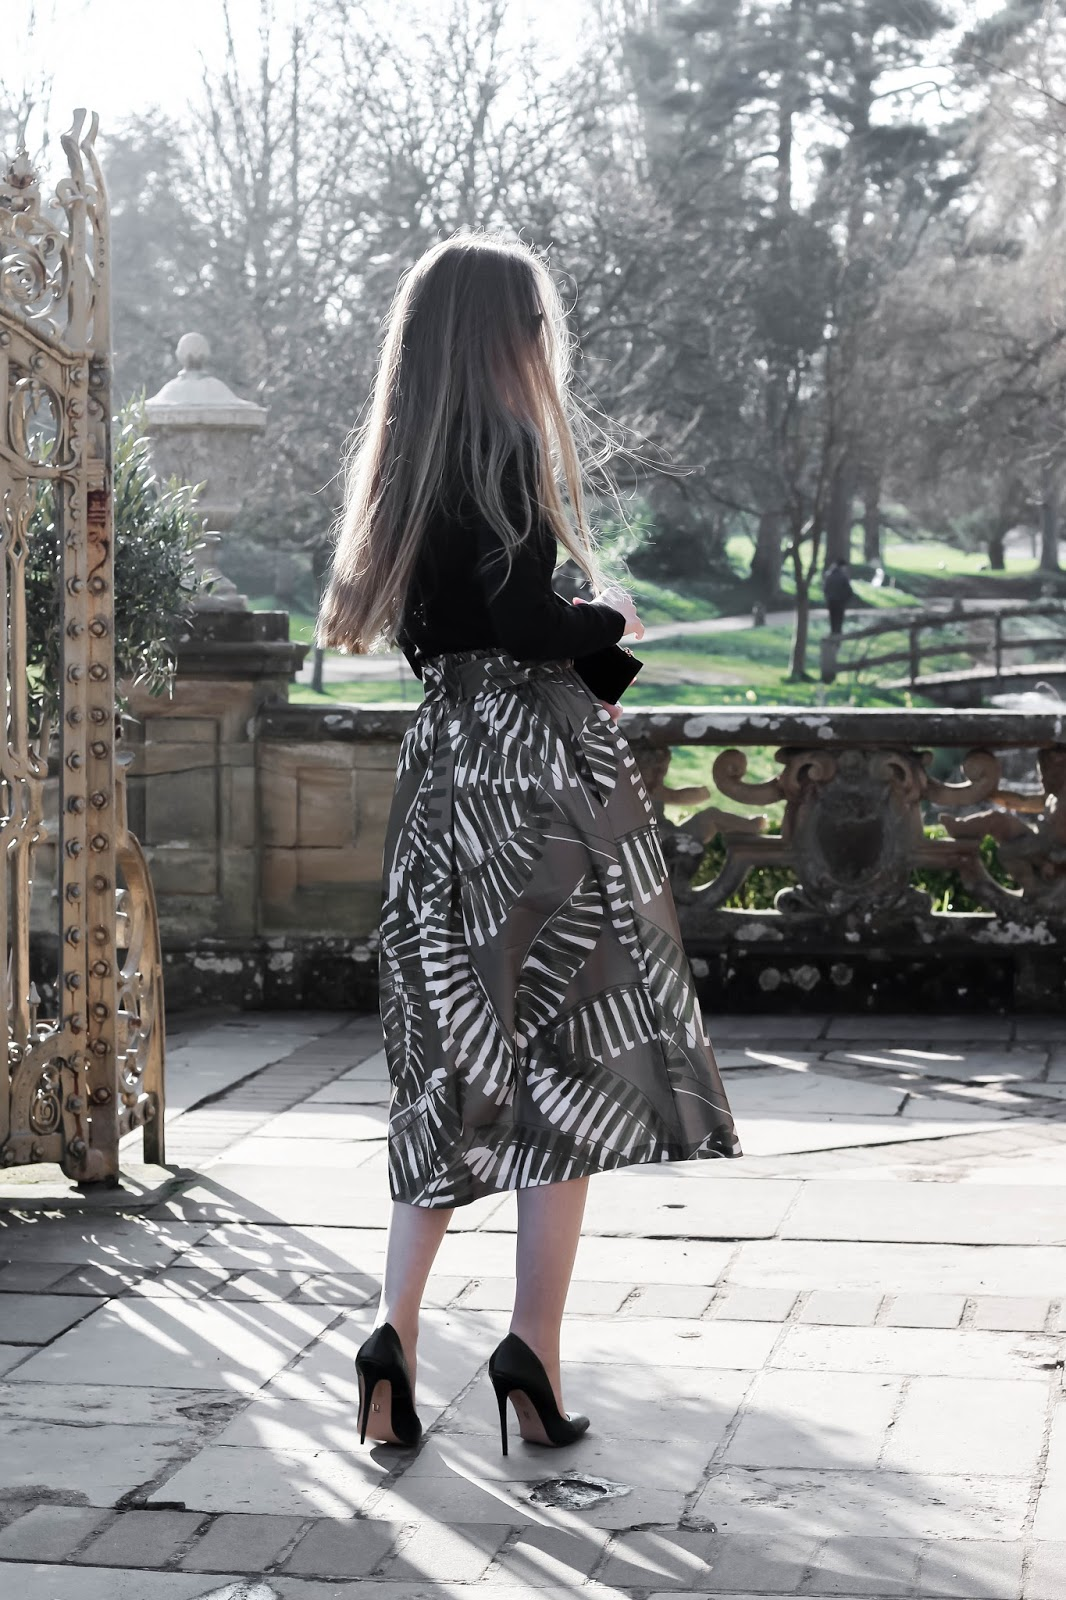 Fashion Blogger Midi Skirt and Stiletto Heels